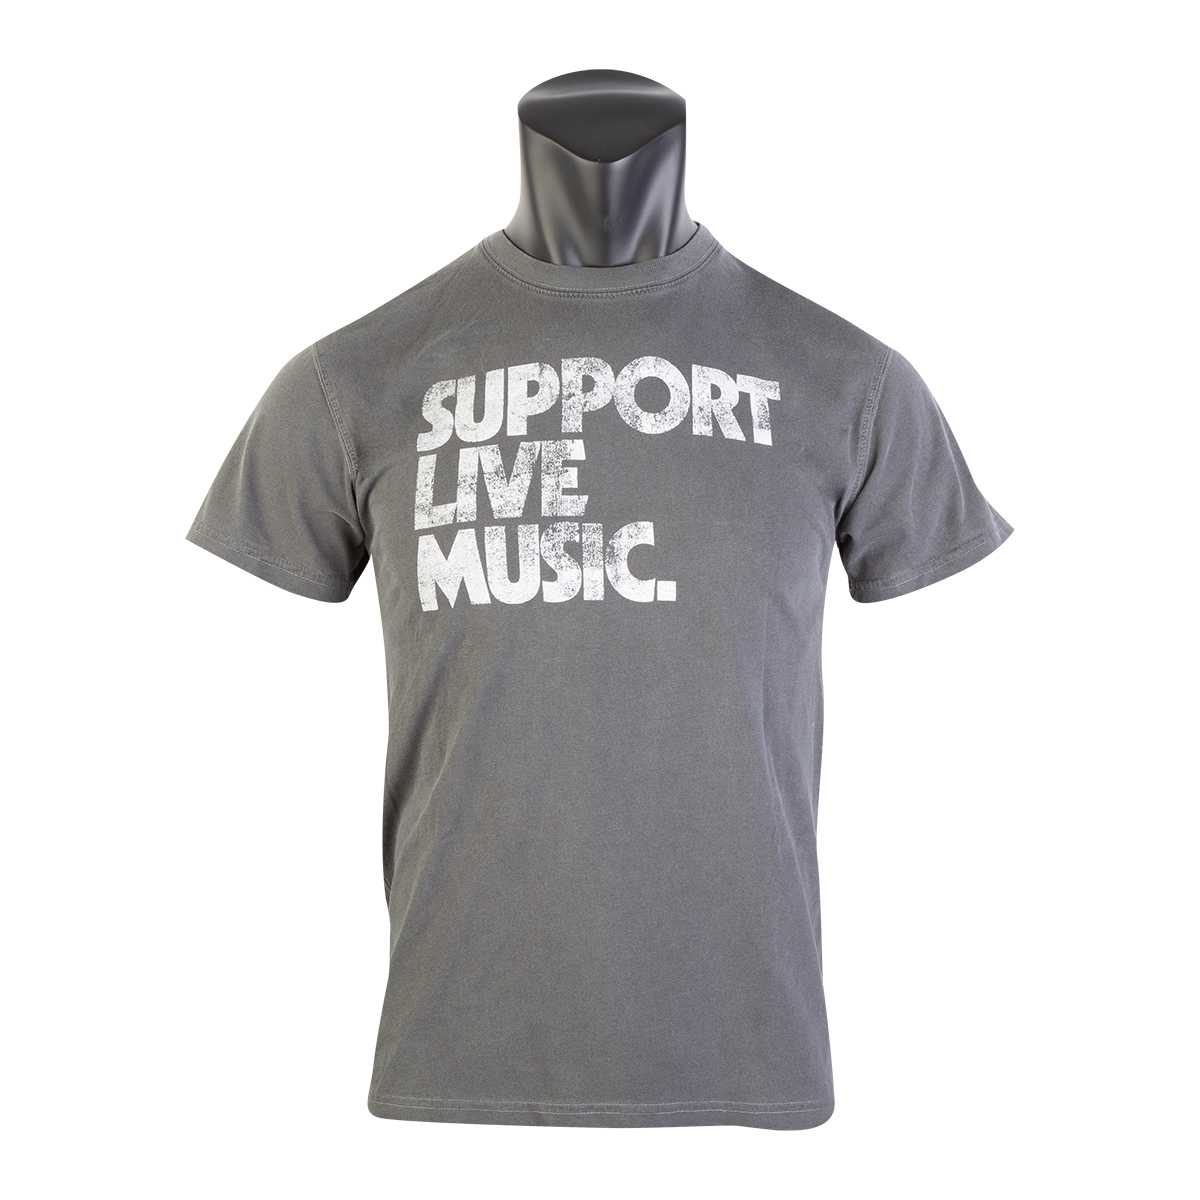 Support Live Music Gray Unisex T-Shirt